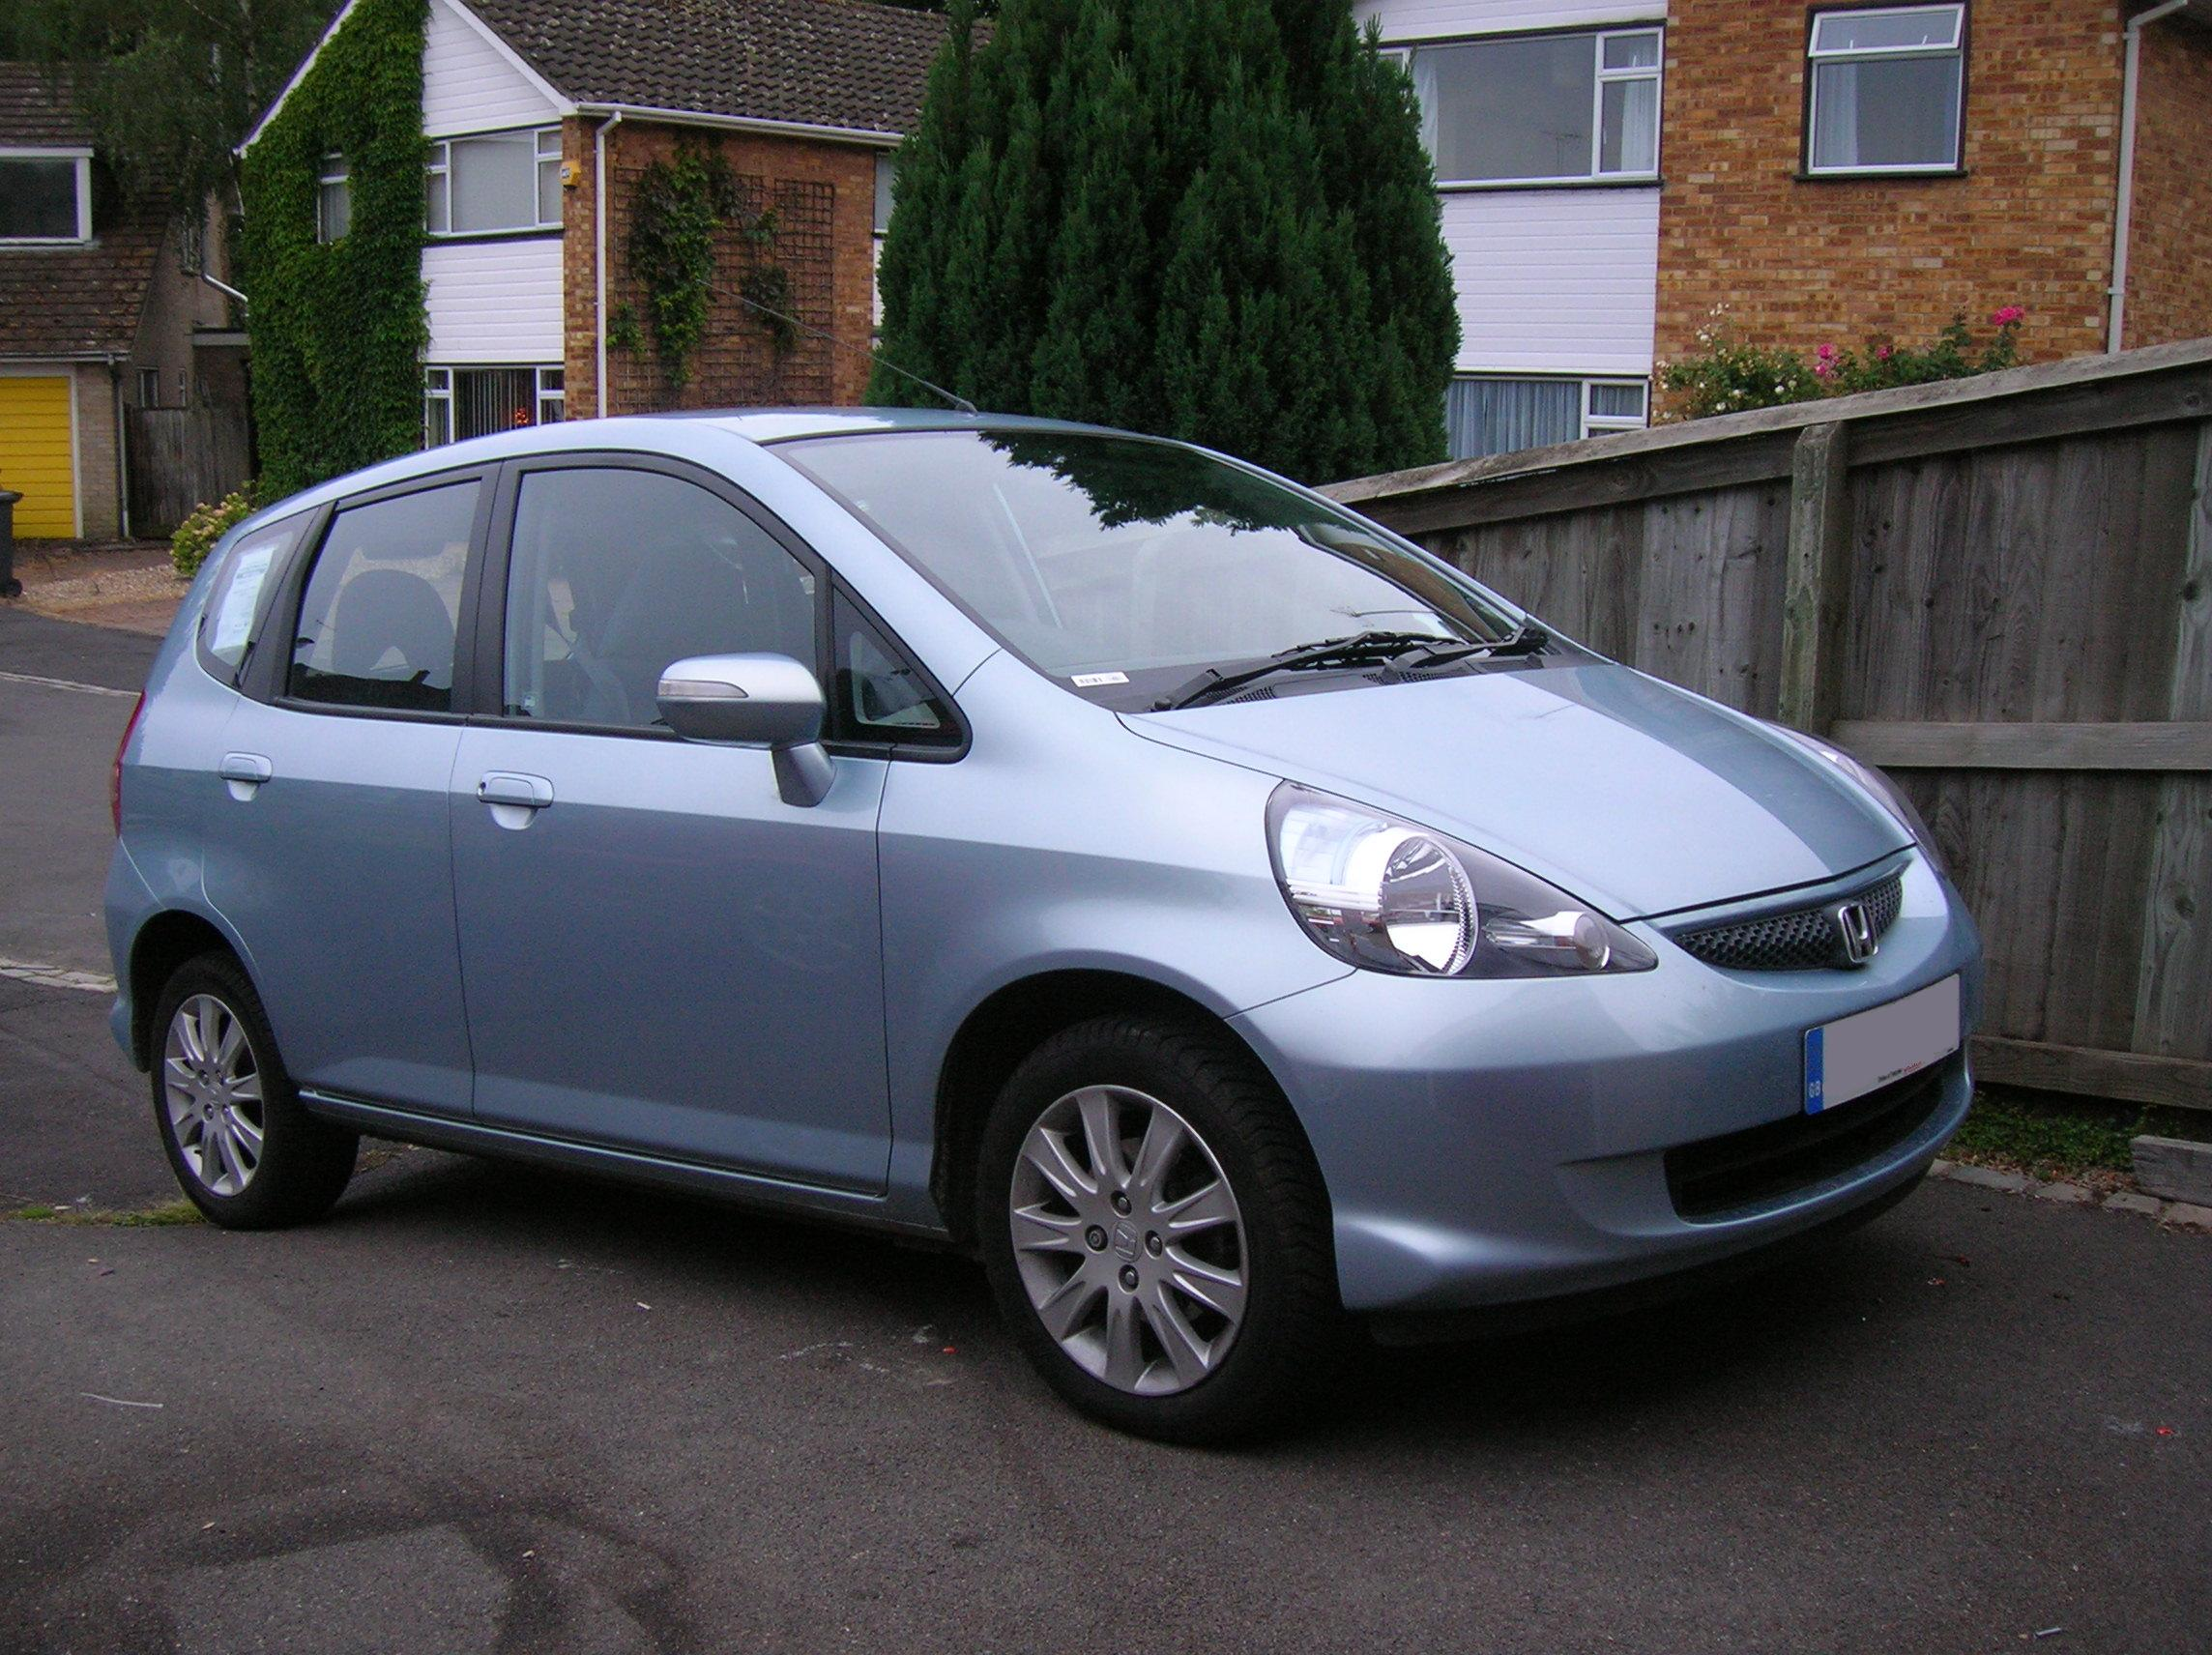 File:2005-Honda-Jazz.jpg